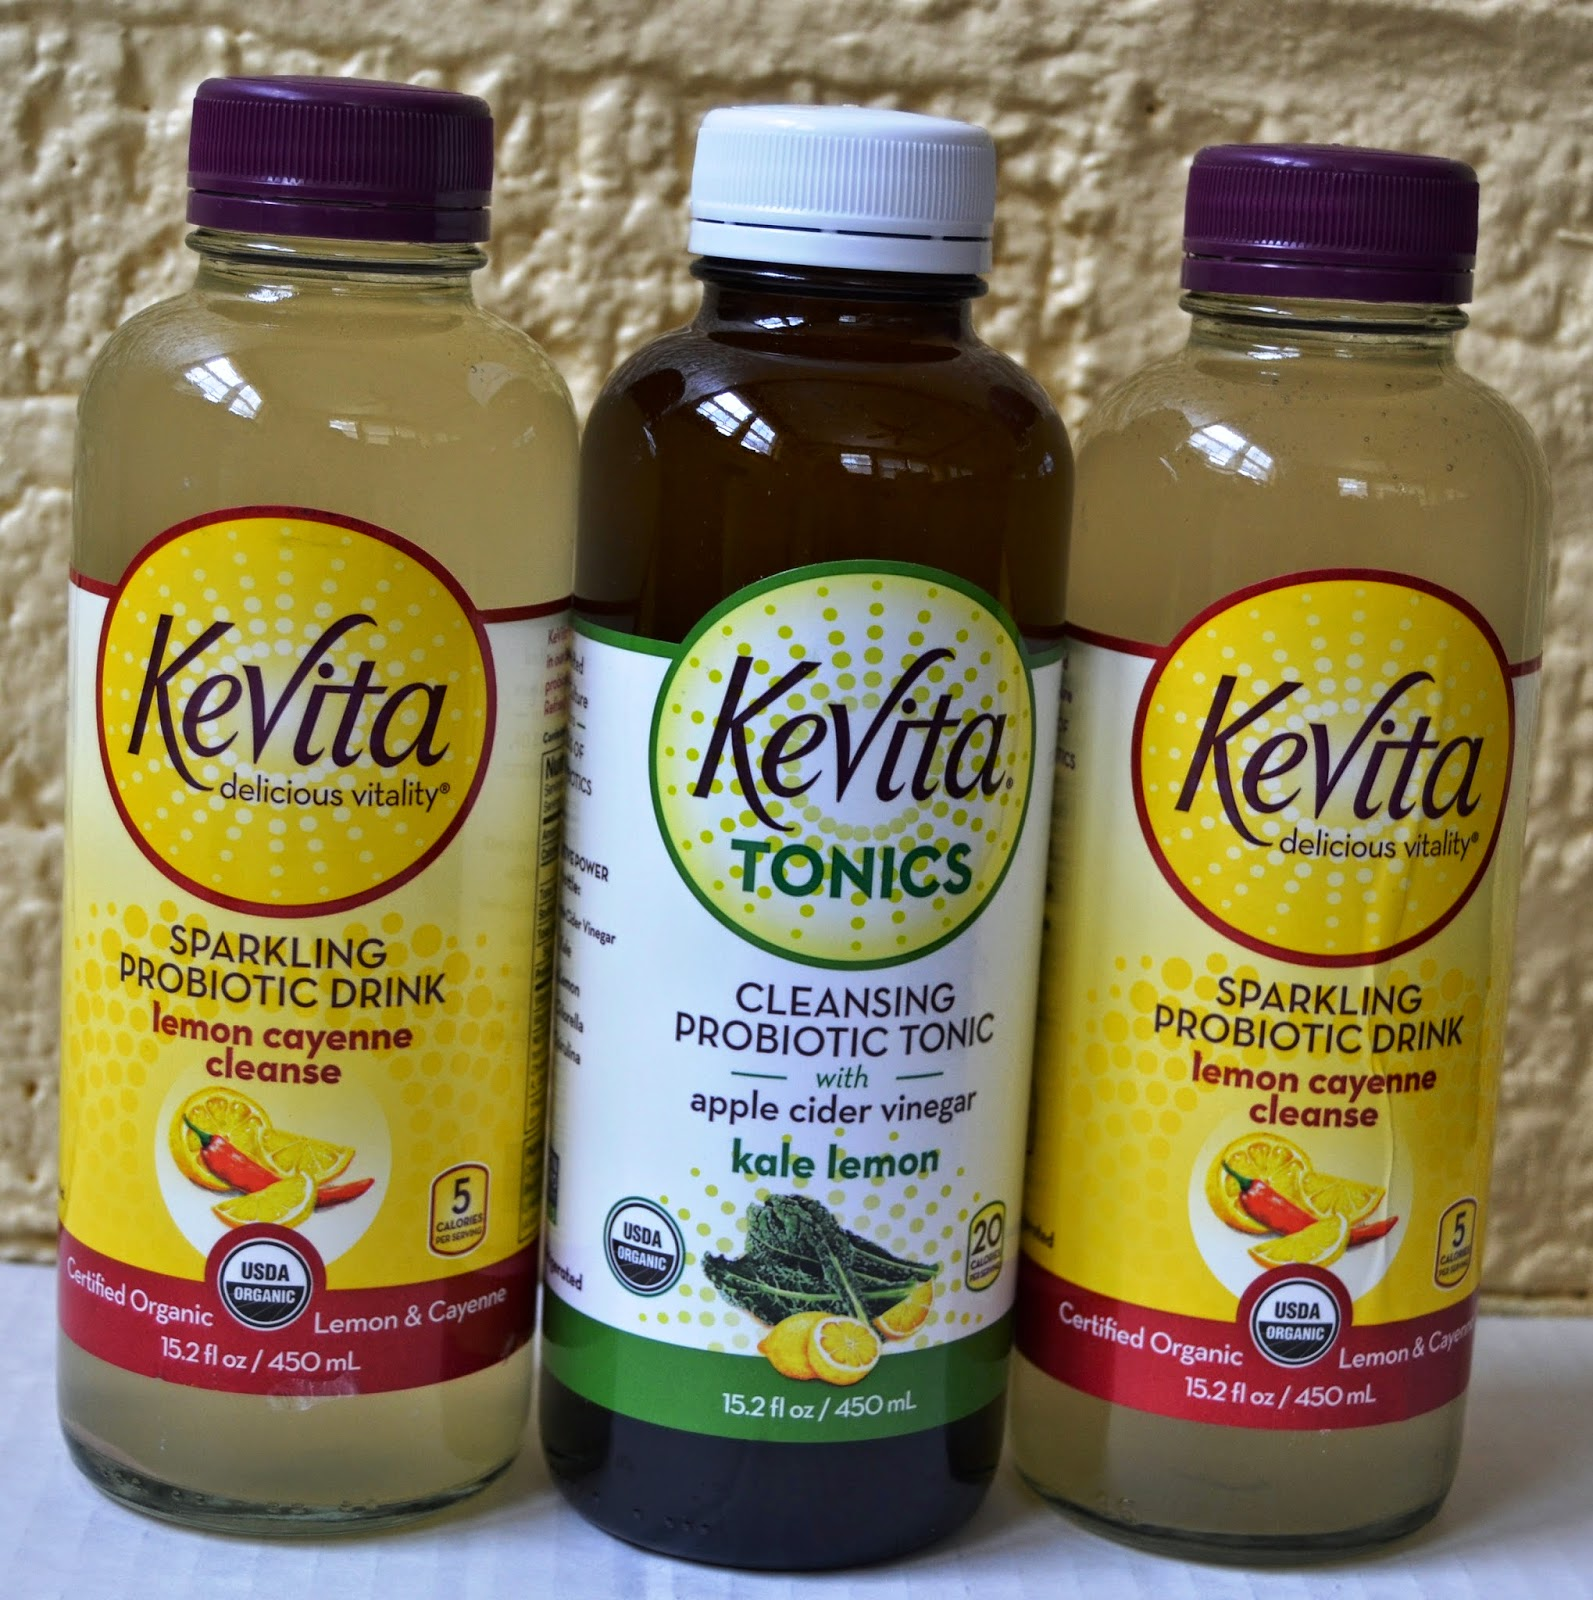 Kevita Probiotic Beverages